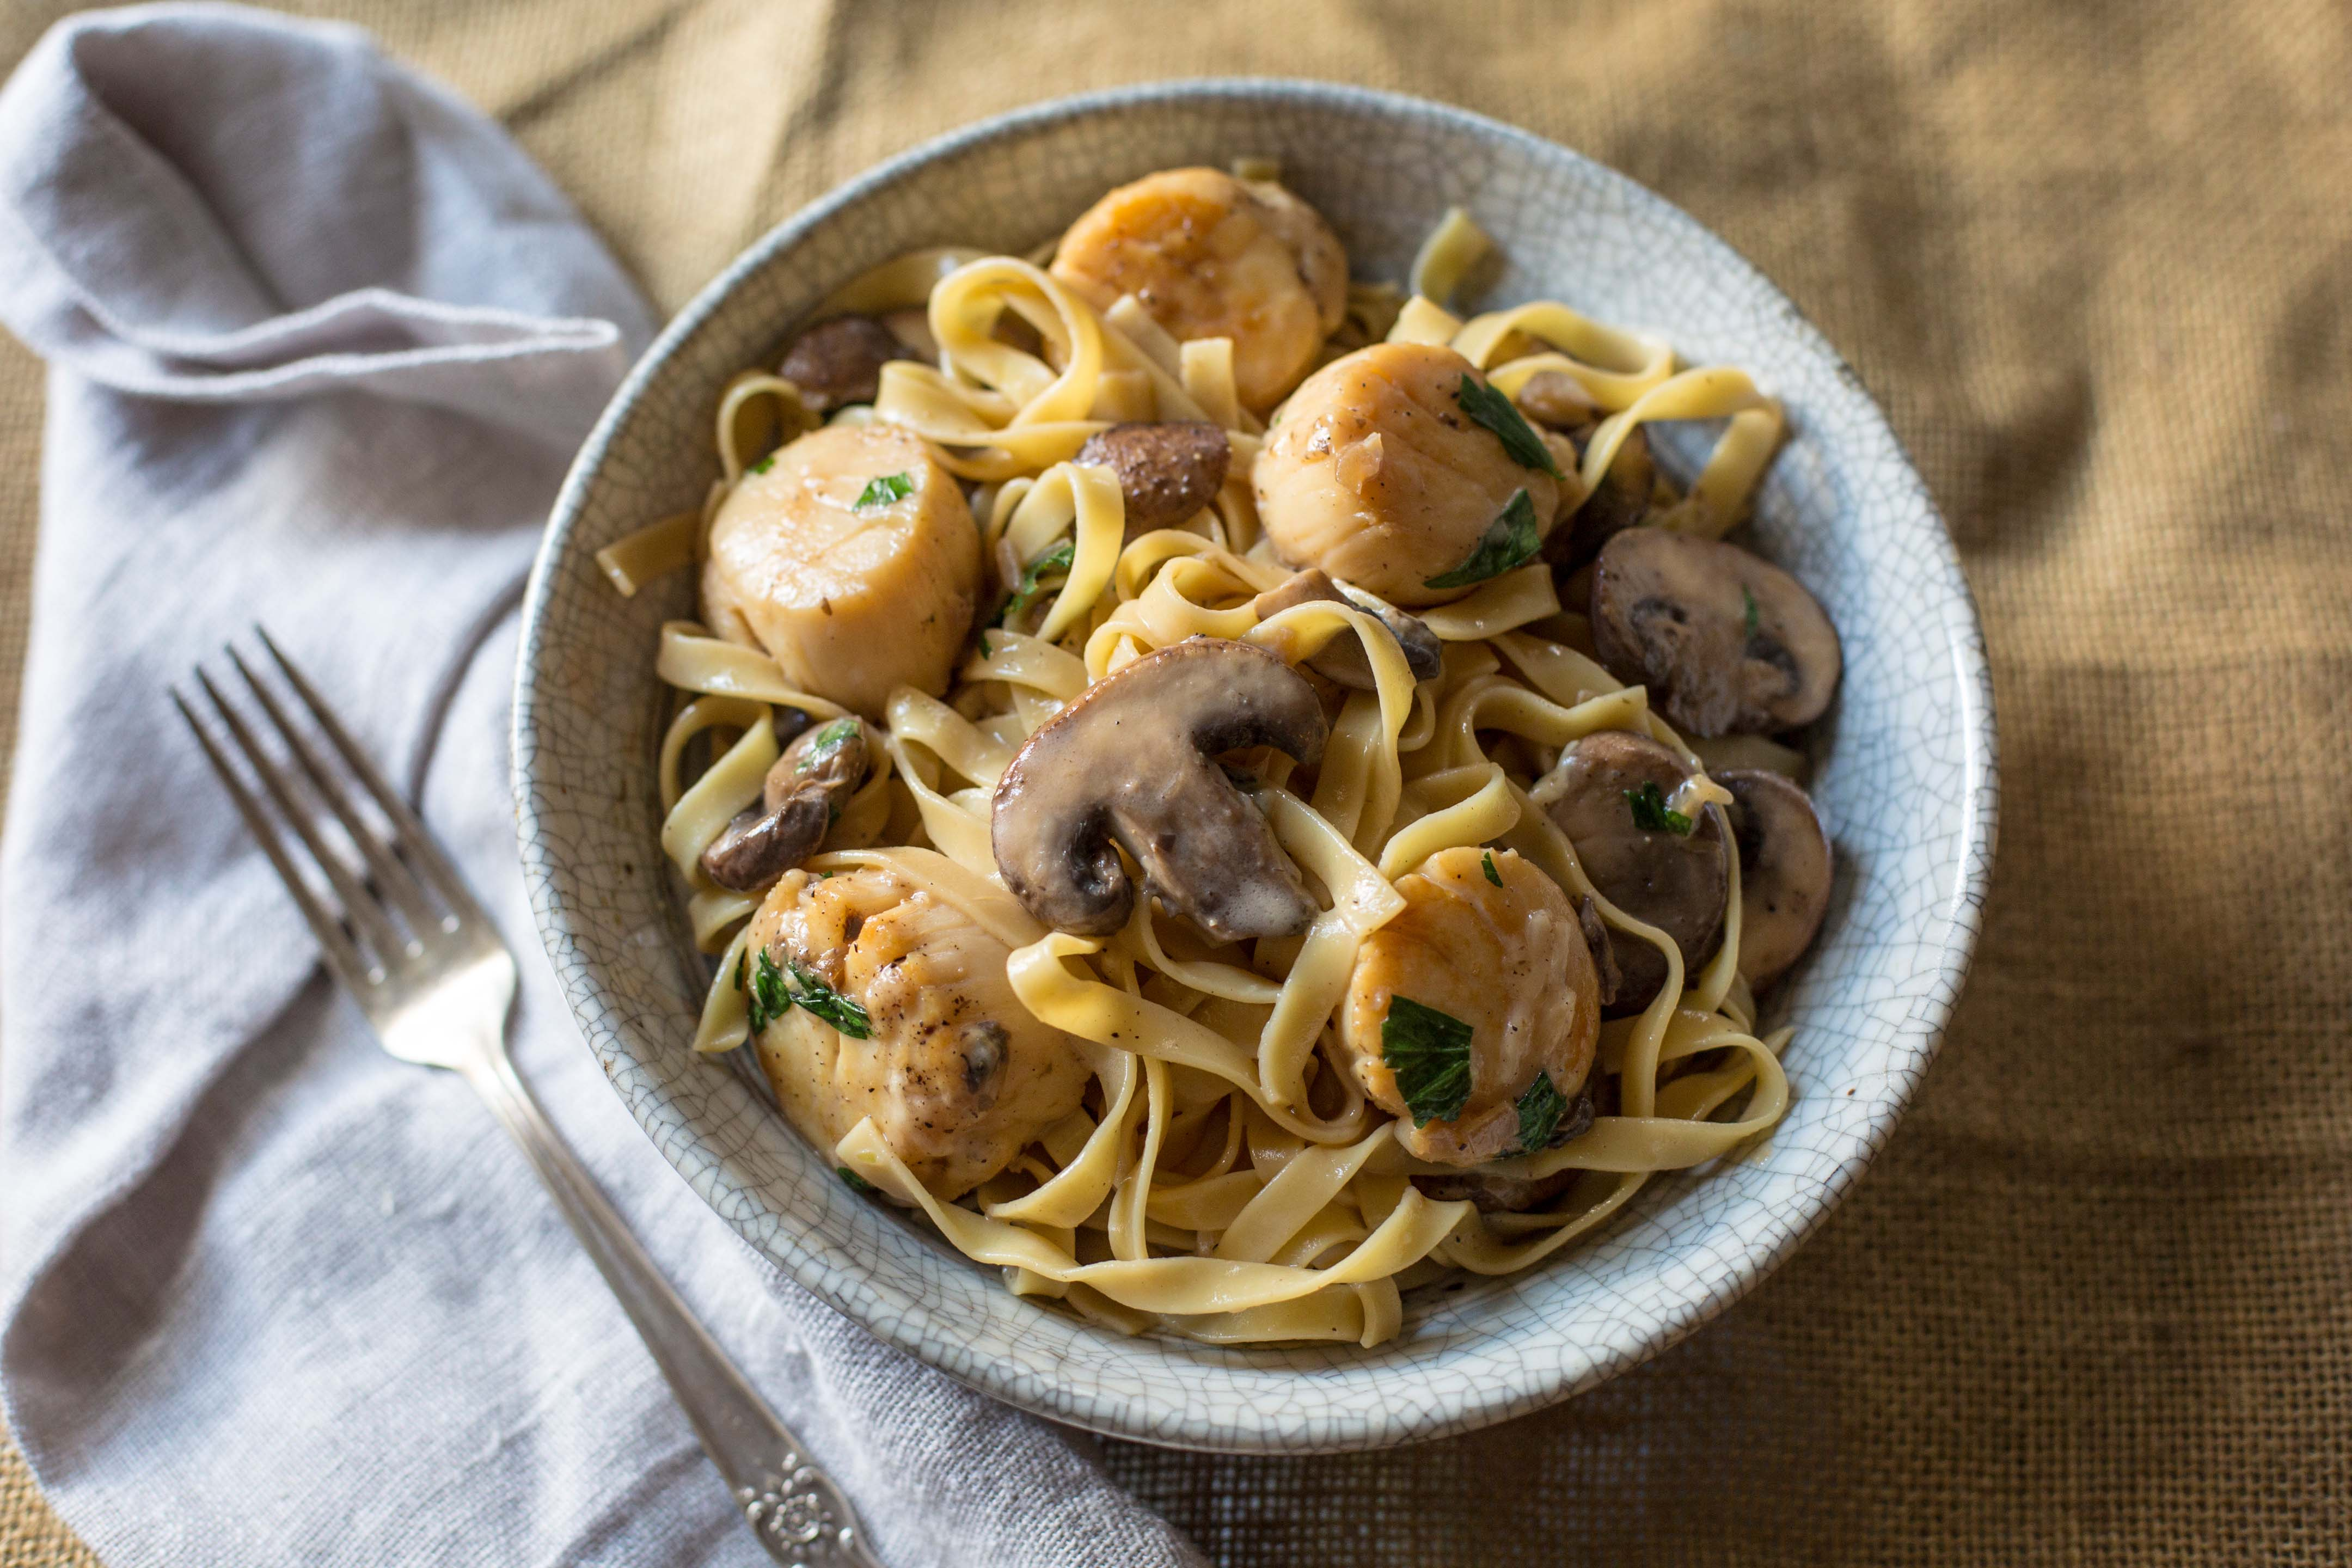 Cuisine Royale Brightness Too High Truffle Scallops Pasta W Mushrooms Shallots